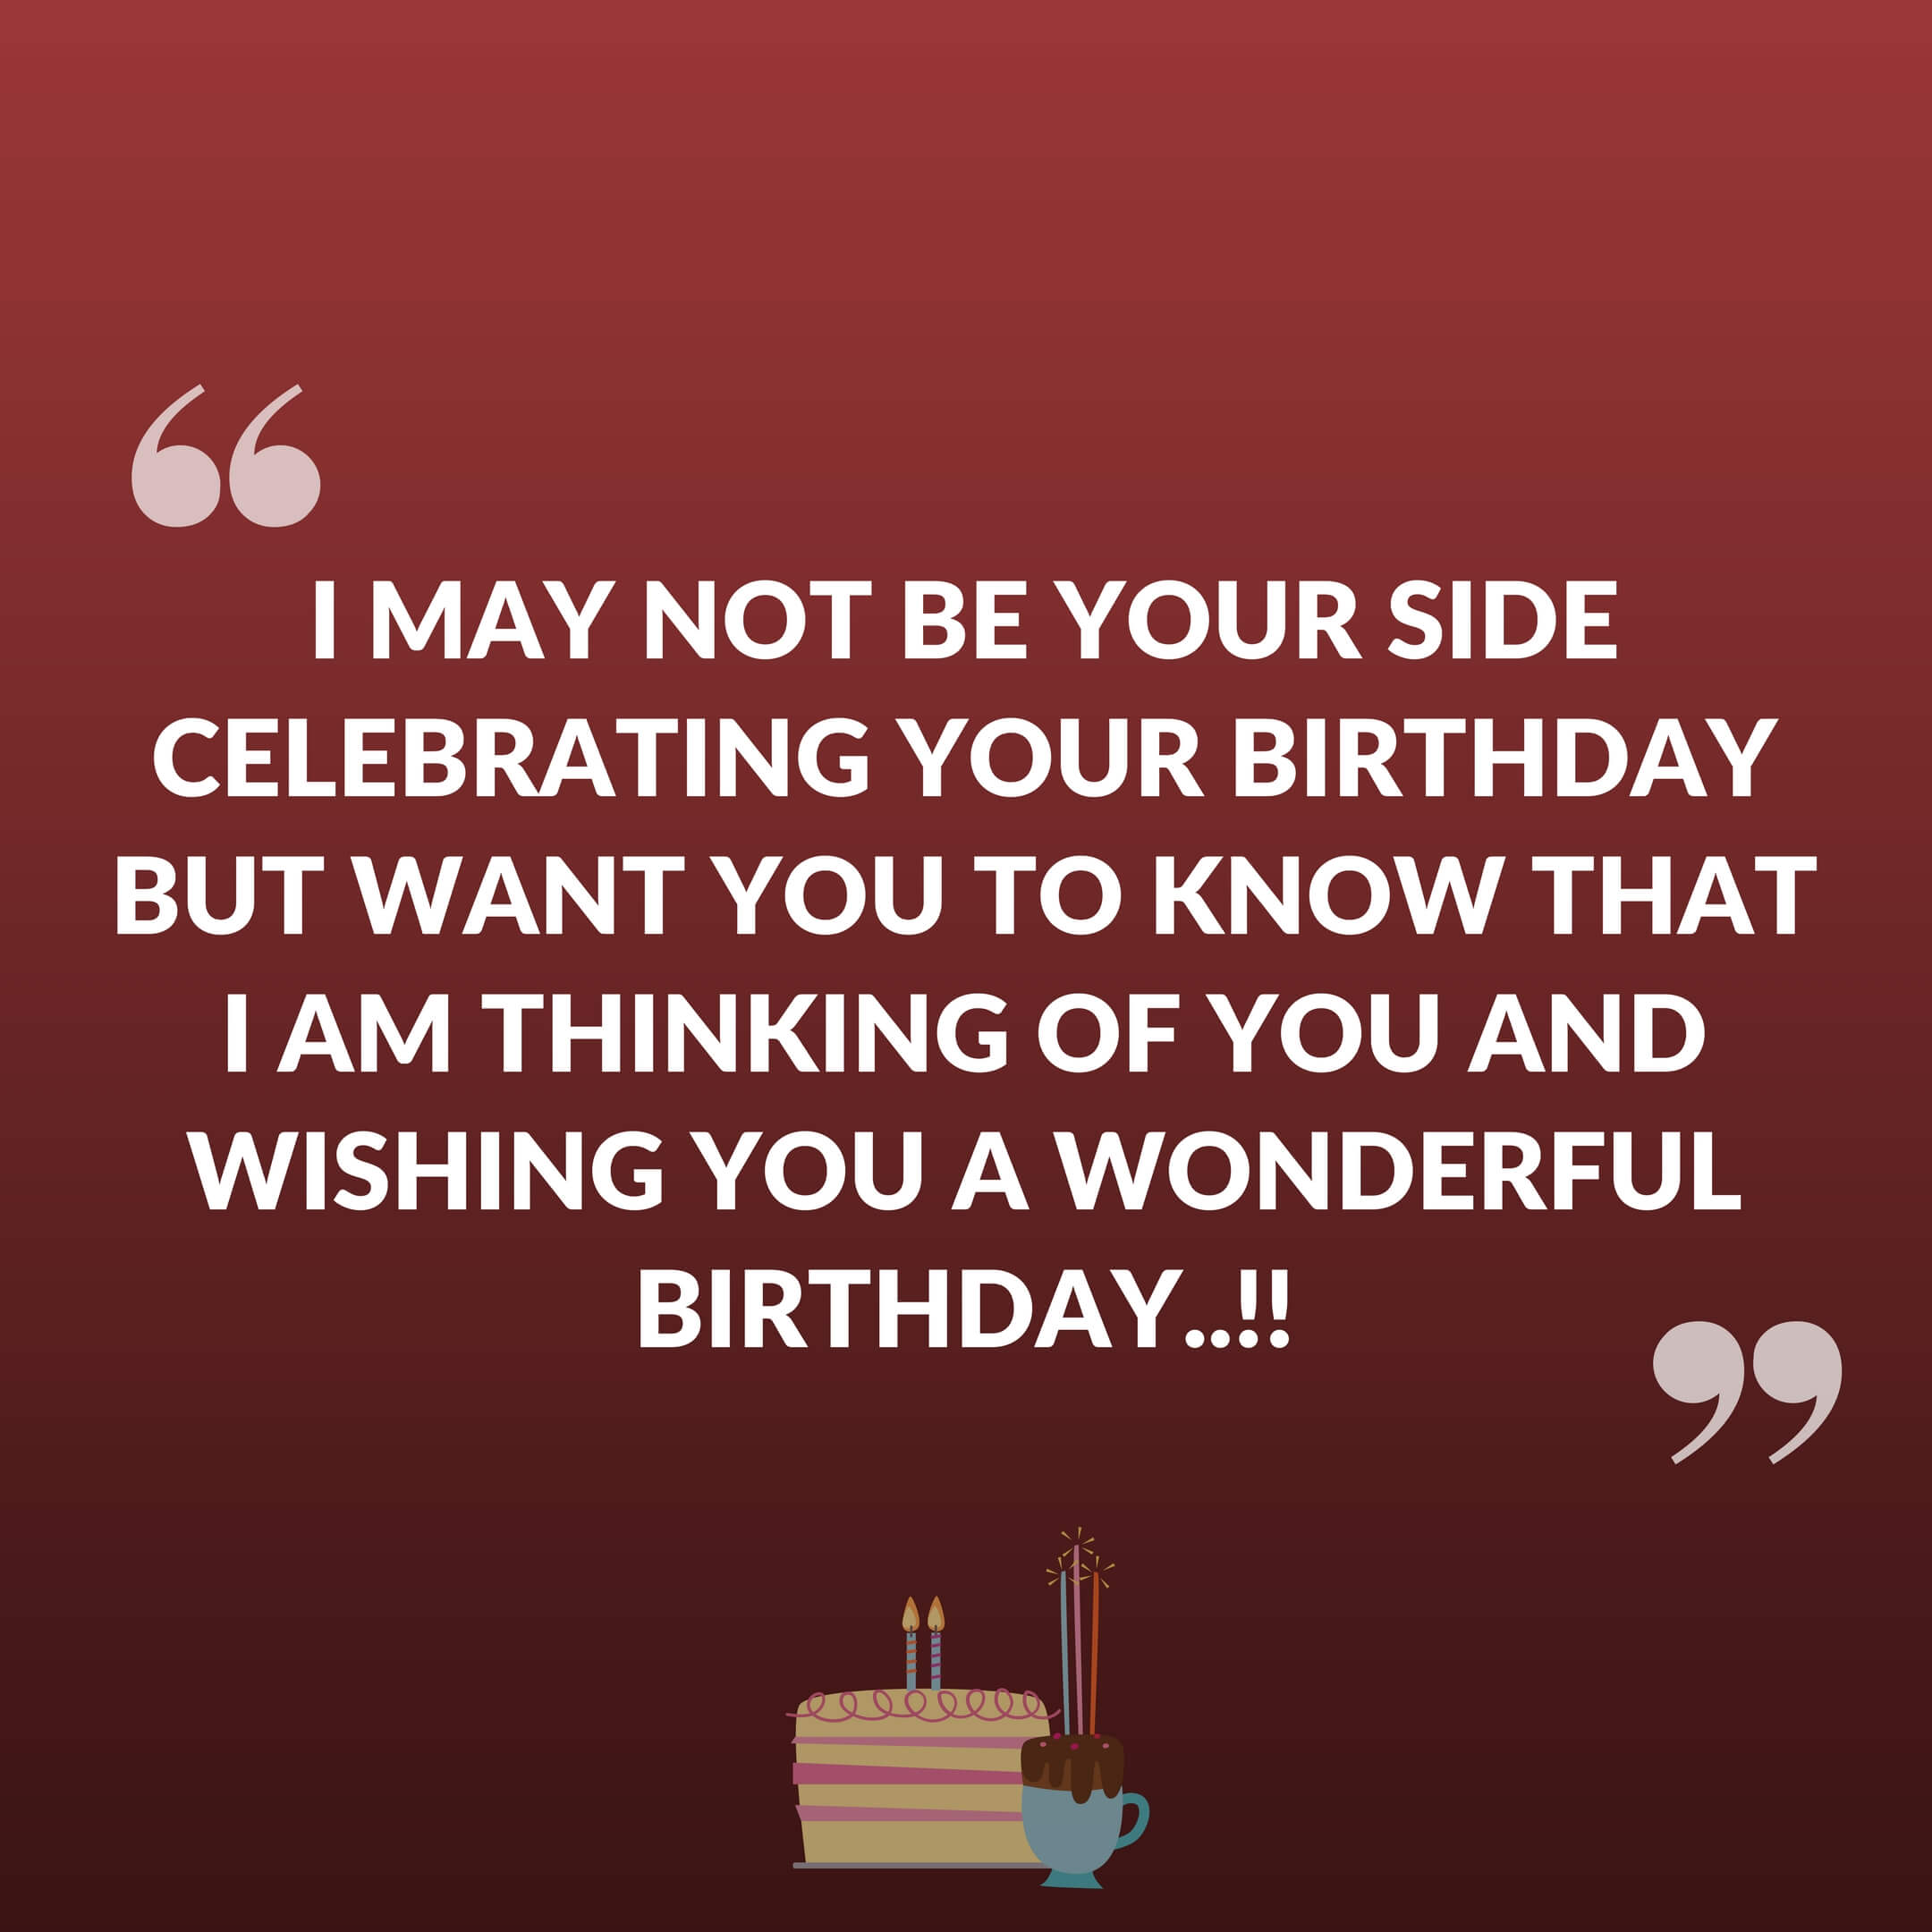 Birthday Wishes Quotes Birthday Wishes Picture Quotes, Find Best birthday wishes picture  Birthday Wishes Quotes